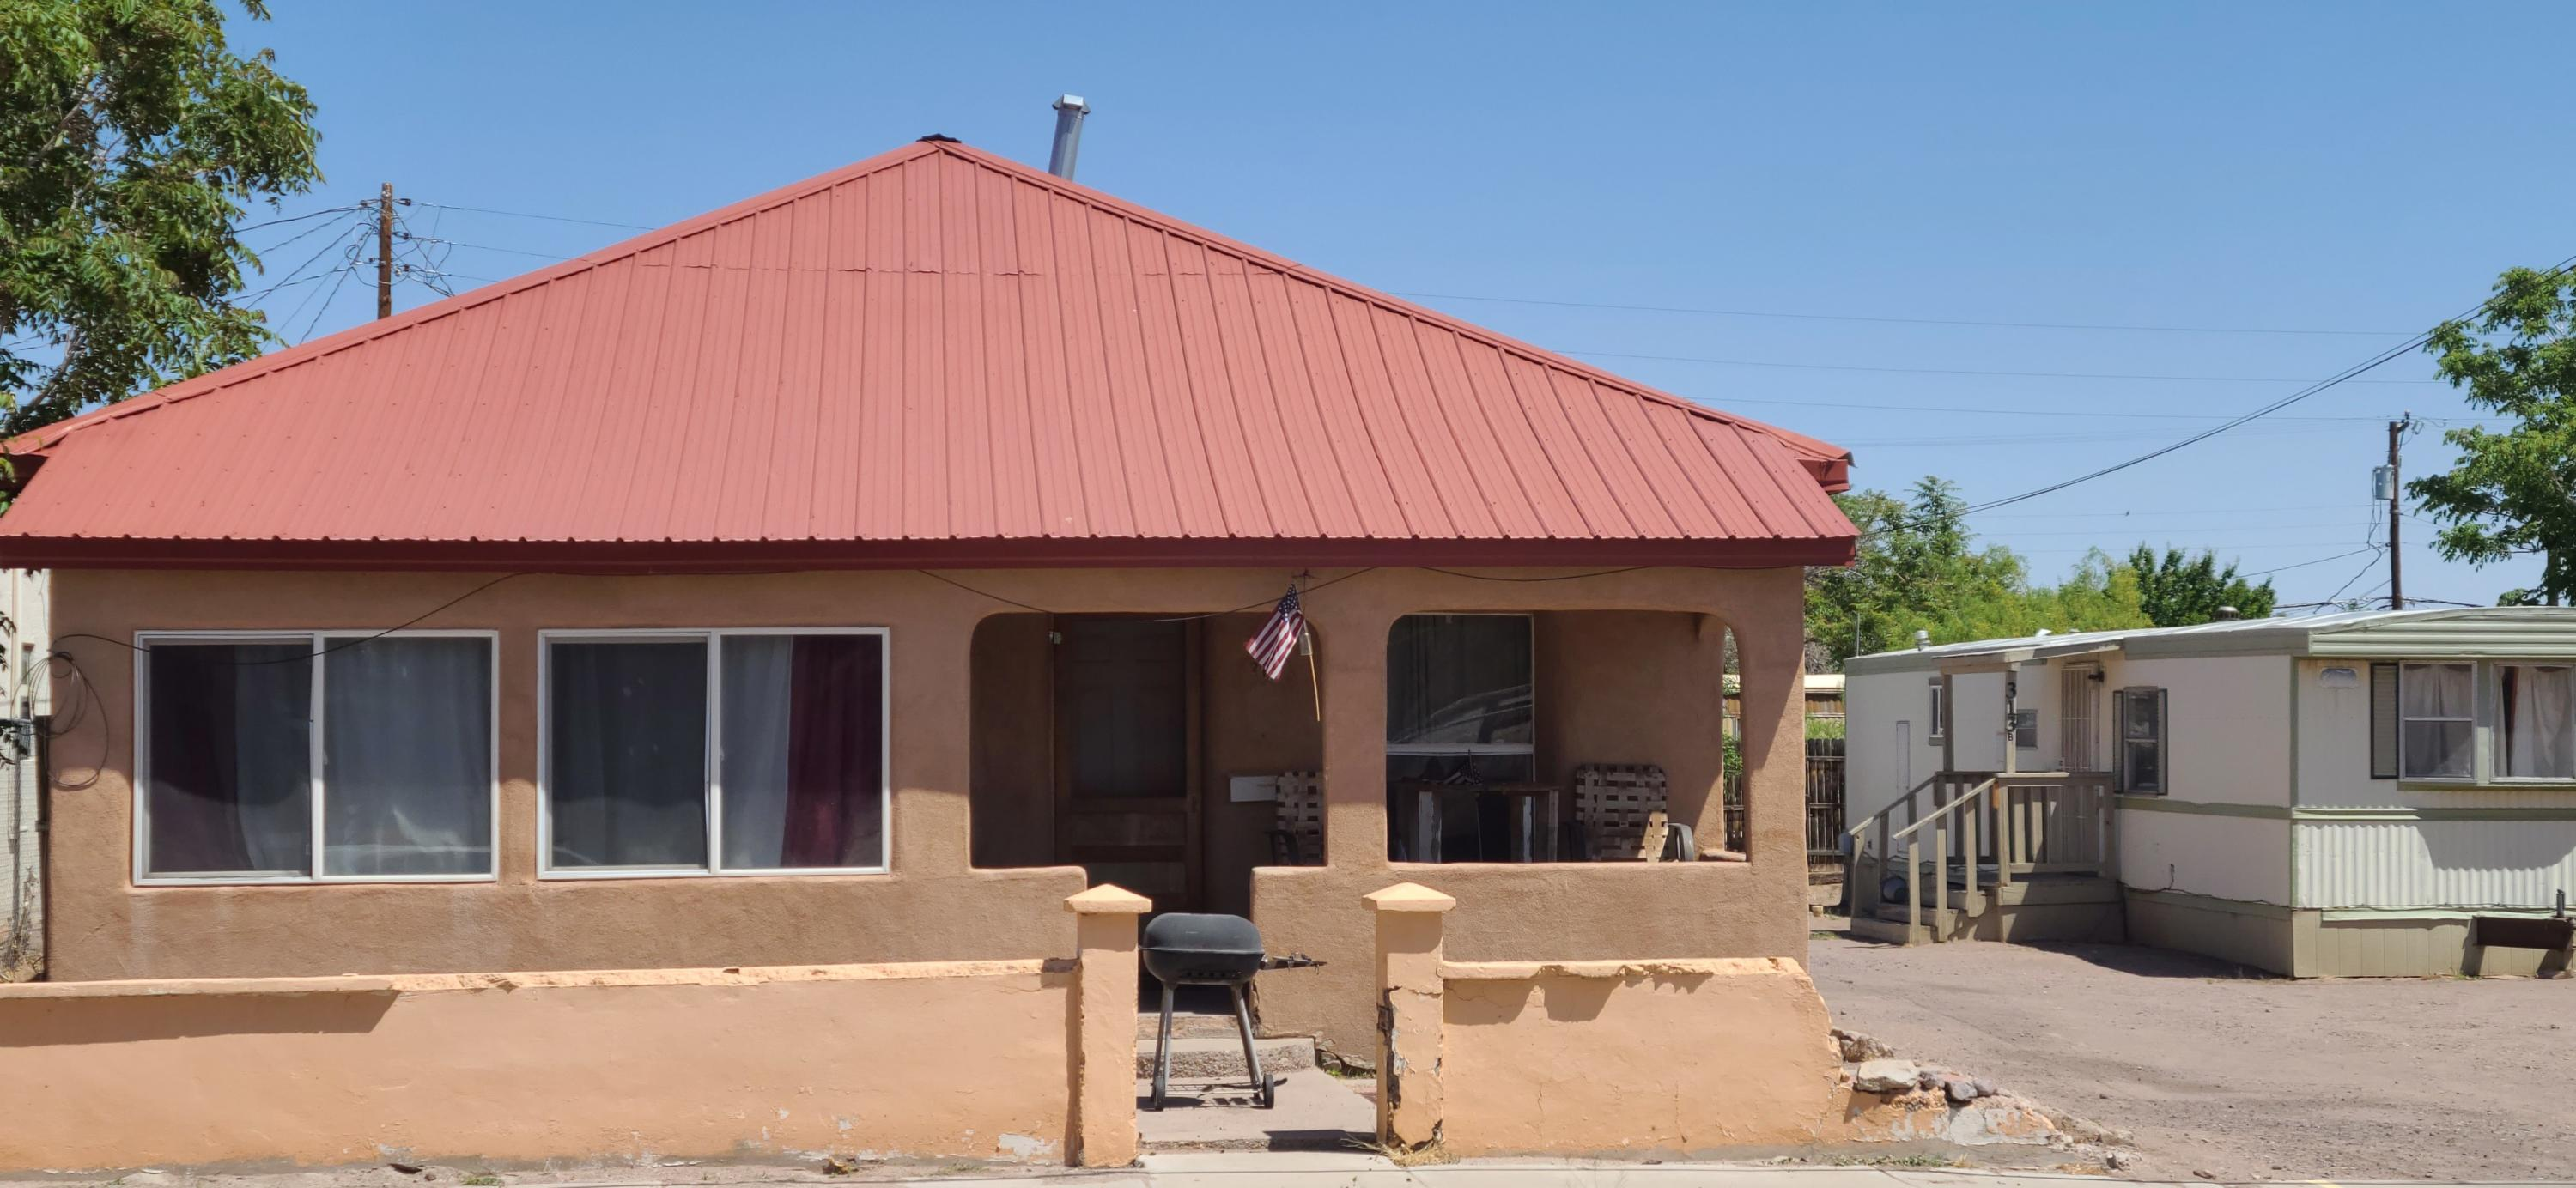 Two Bedroom, one bath near center of Socorro, NM with rental potential. MH will convey with property. Tenants in house and MH, 48 hour notice required for showings.